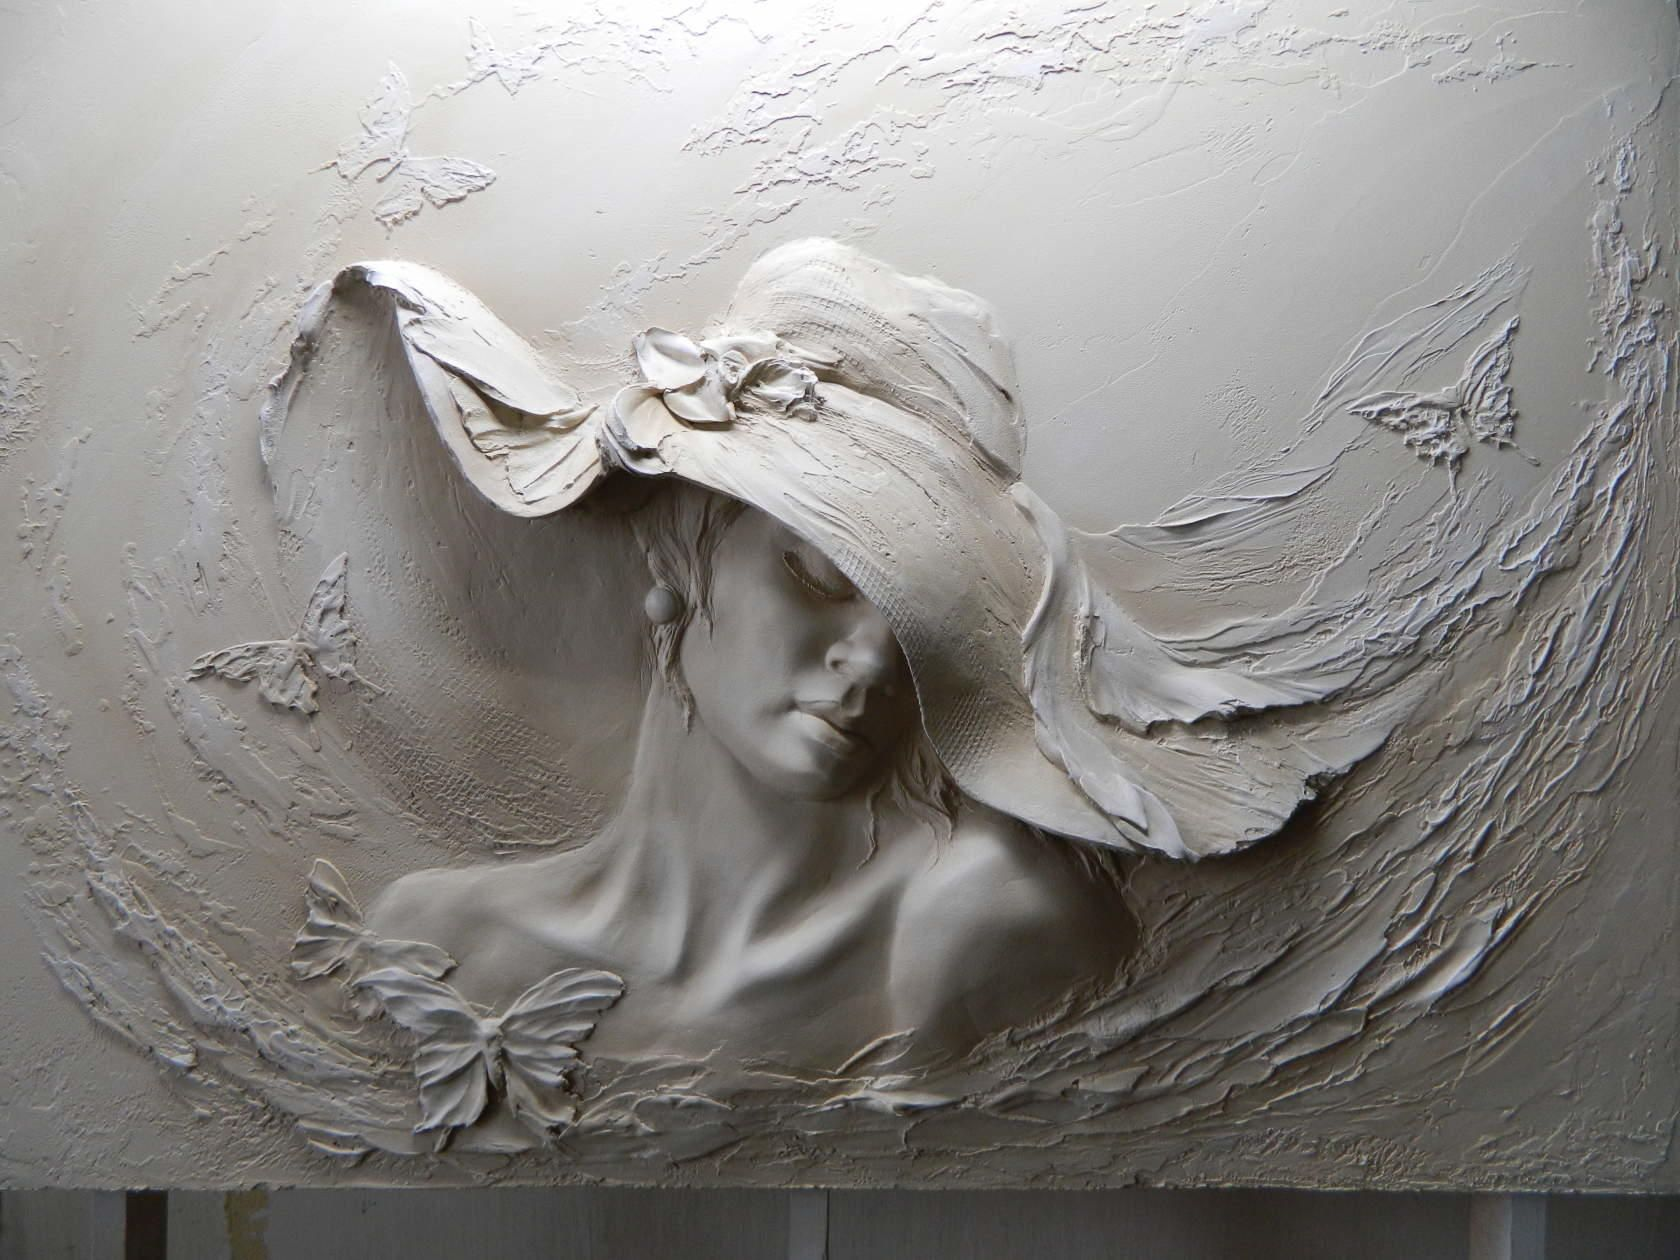 Plaster Of Paris Wall Designs: Панно в интерьере